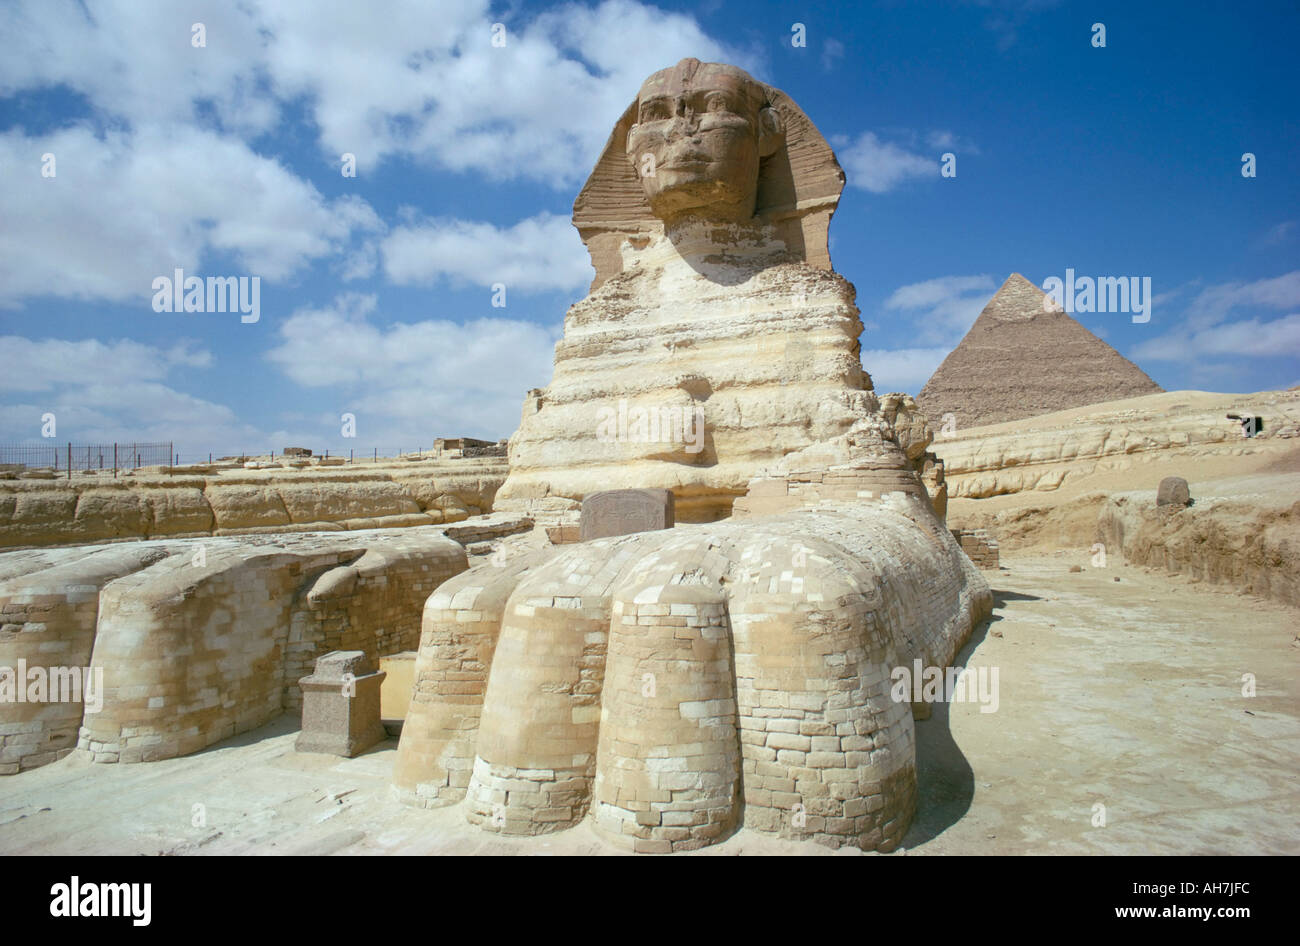 The sphinx Giza UNESCO World Heritage Site Cairo Egypt North Africa Africa - Stock Image